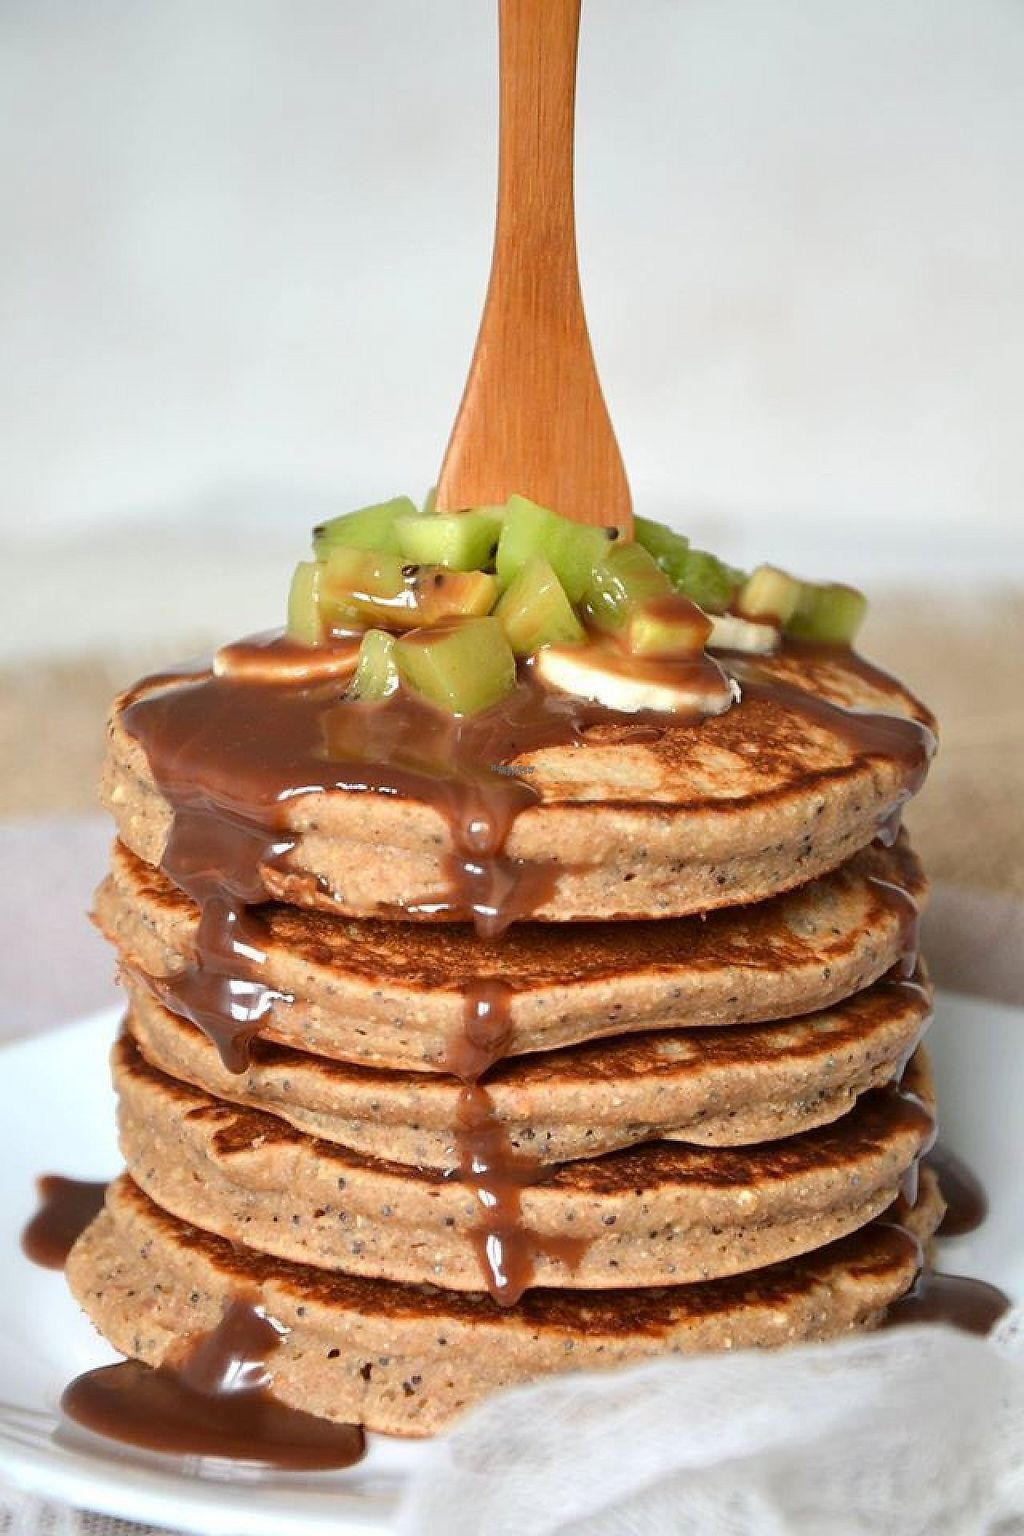 """Photo of La Vie Claire  by <a href=""""/members/profile/community"""">community</a> <br/>vegan pancakes  <br/> February 4, 2017  - <a href='/contact/abuse/image/71976/221848'>Report</a>"""